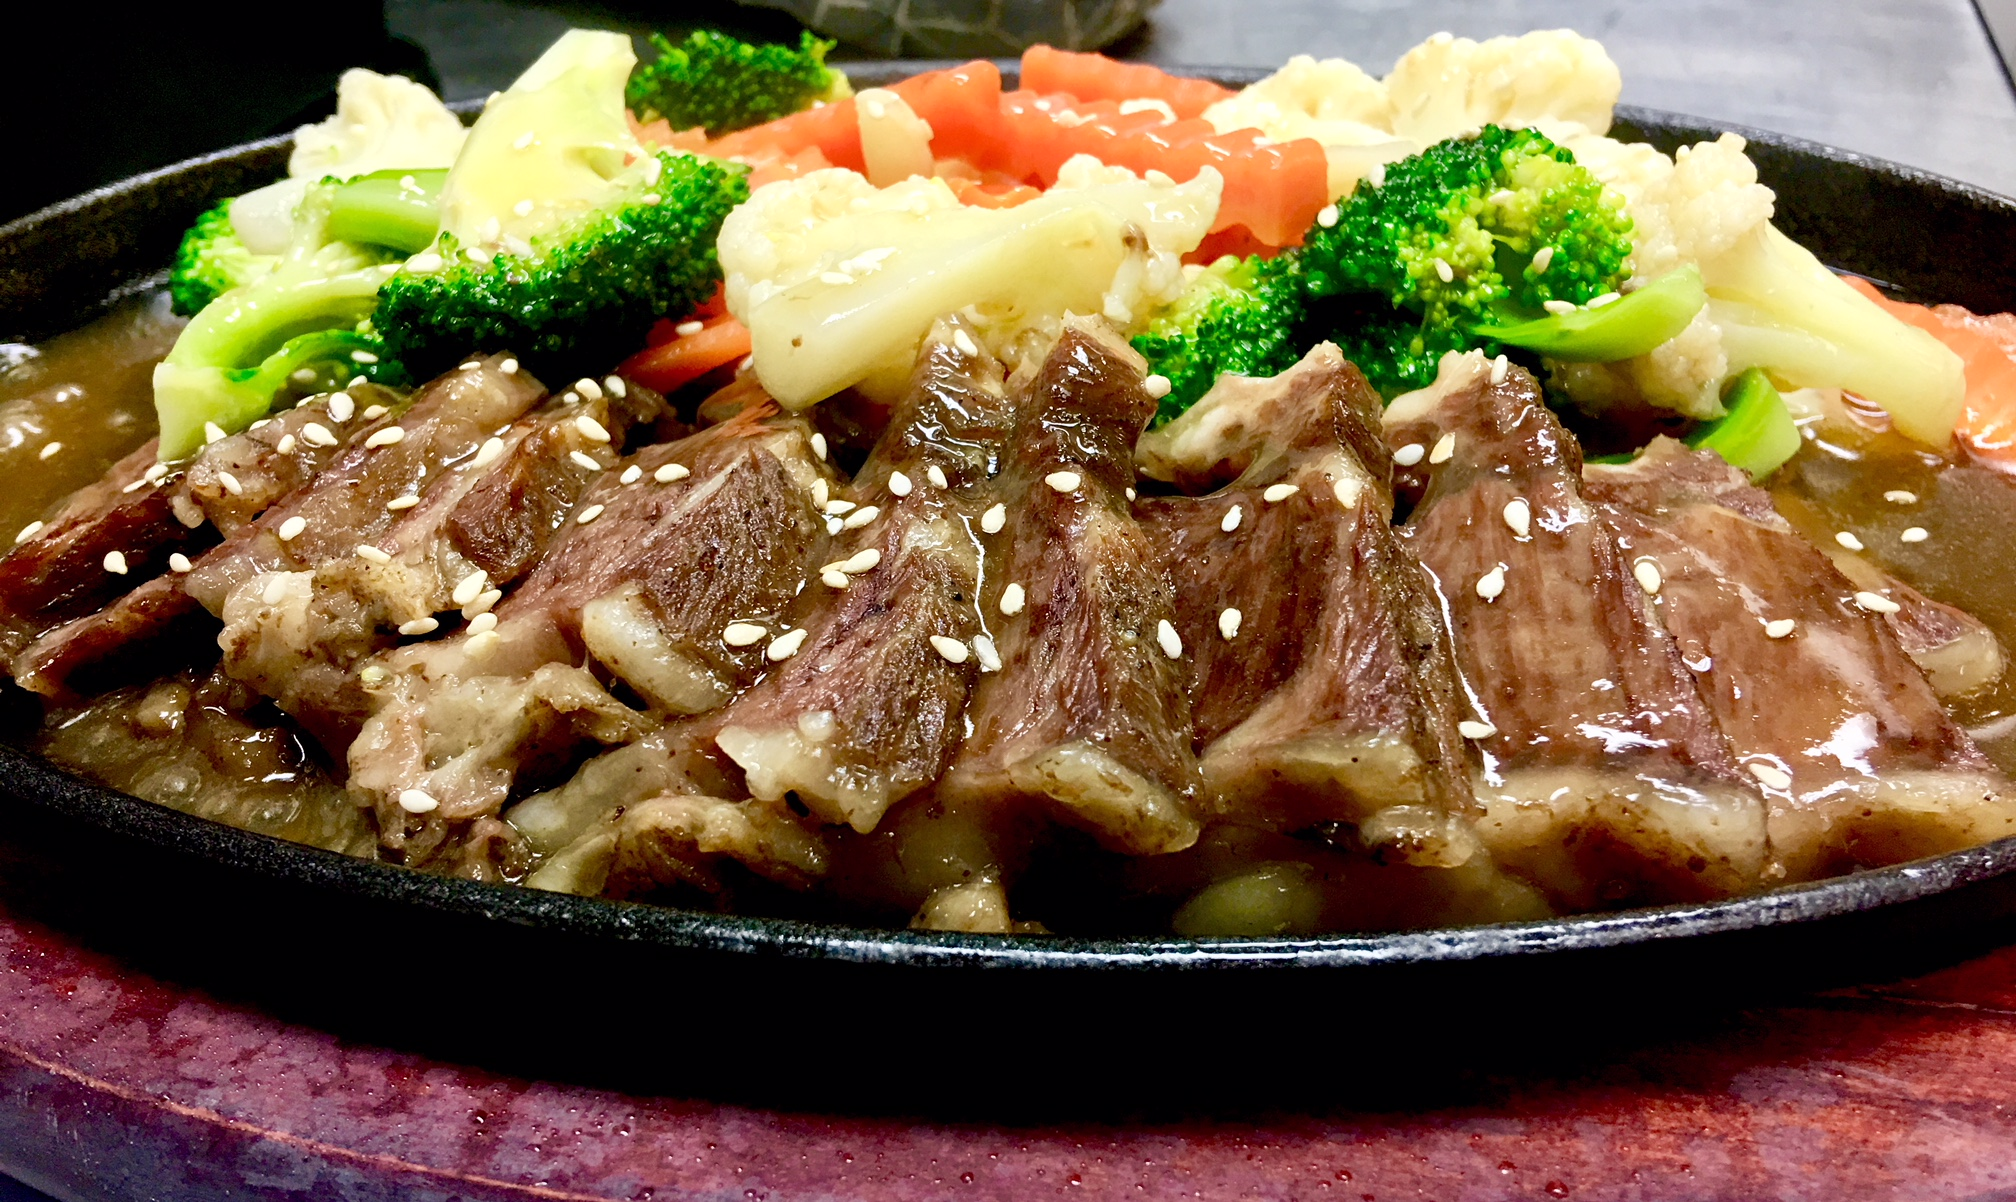 Special Braised Porterhouse Steak